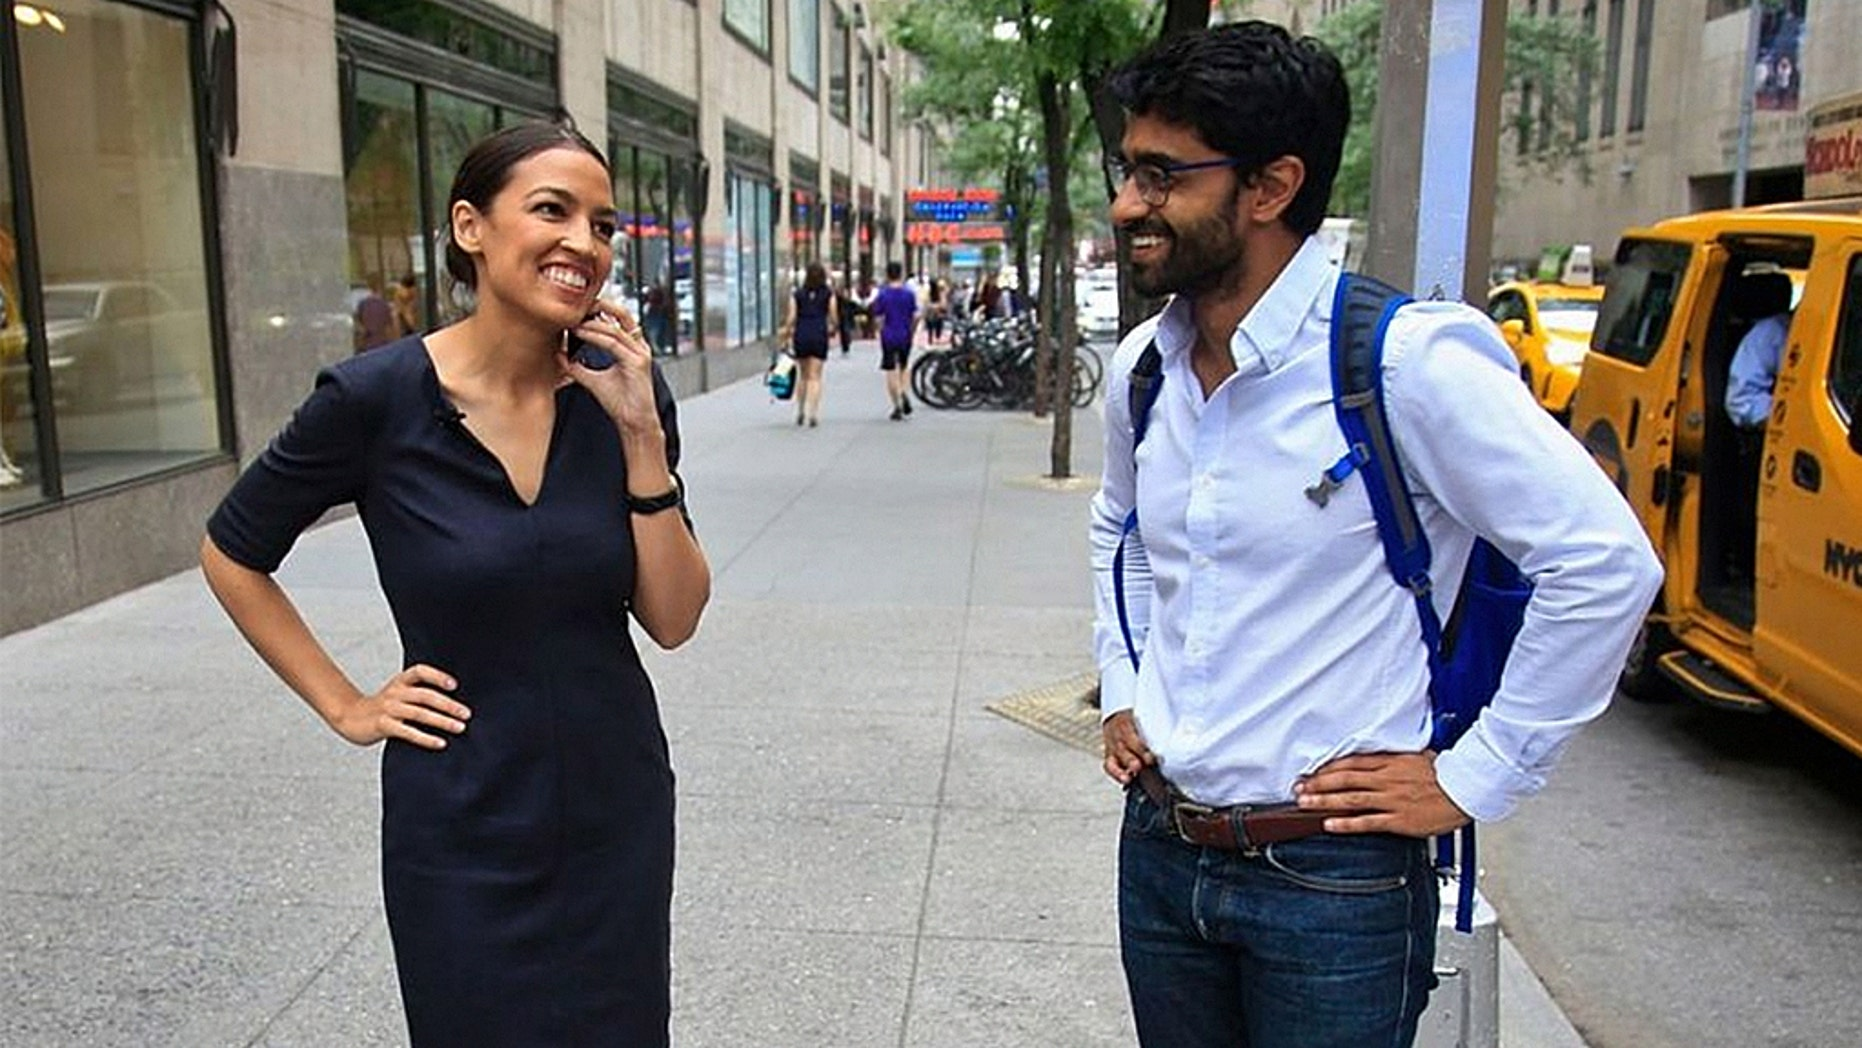 Alexandria Ocasio-Cortez, left, the winner of the Democratic primary in New York's 14th Congressional District, speaks on a phone as Saikat Chakrabarti, her senior campaign adviser stands by, Wednesday, June 27, 2018, in New York.